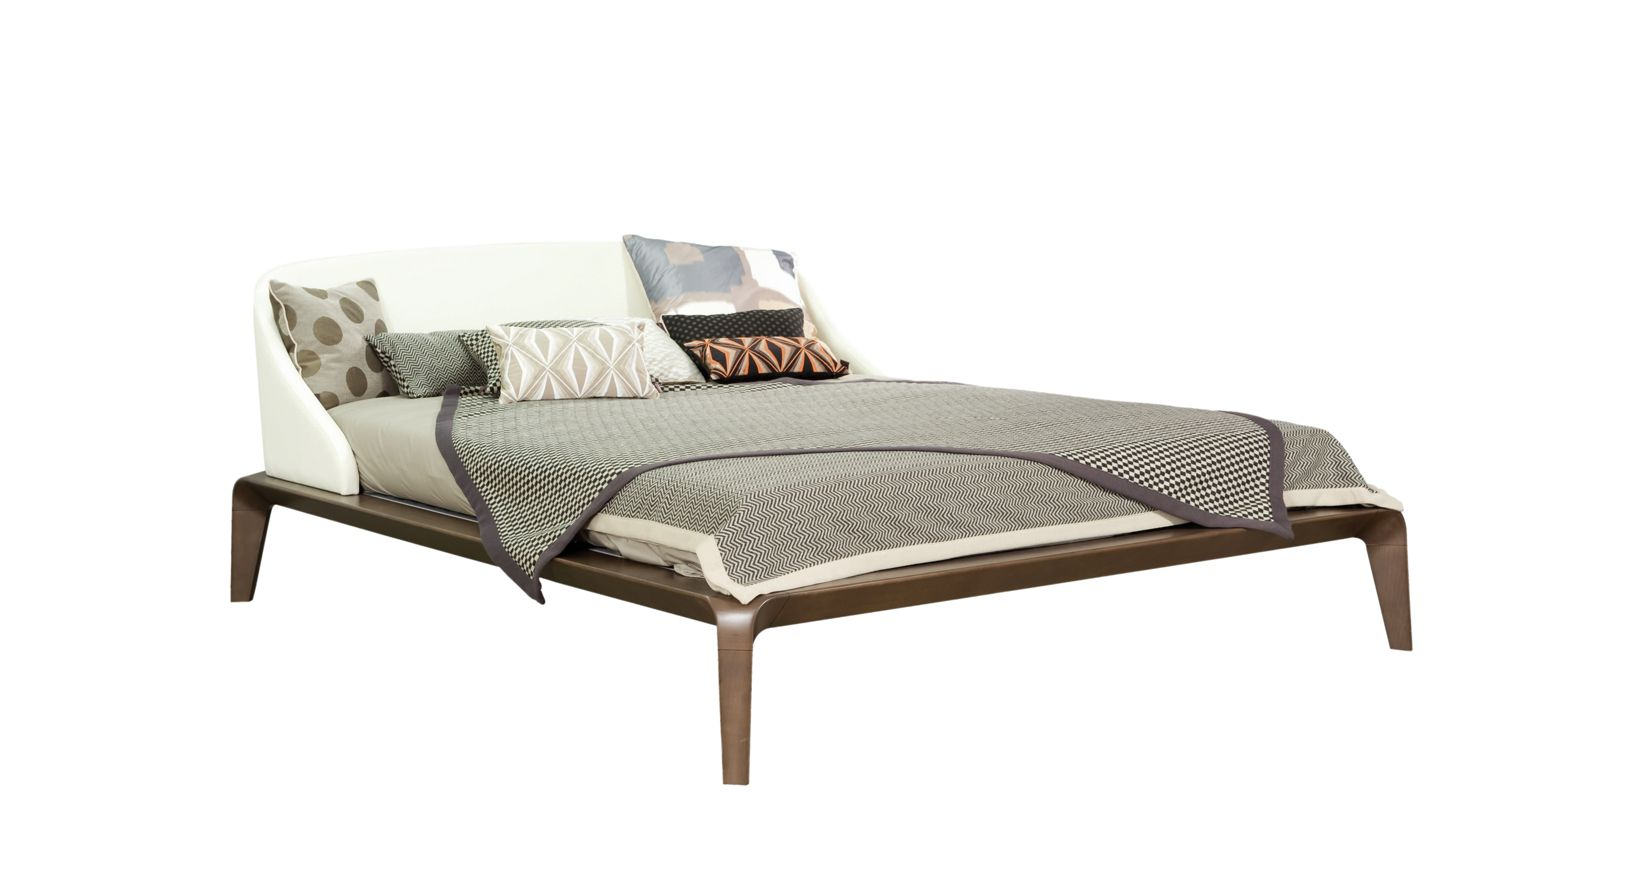 Roche Bobois Products: Our Selection Of Design Furniture